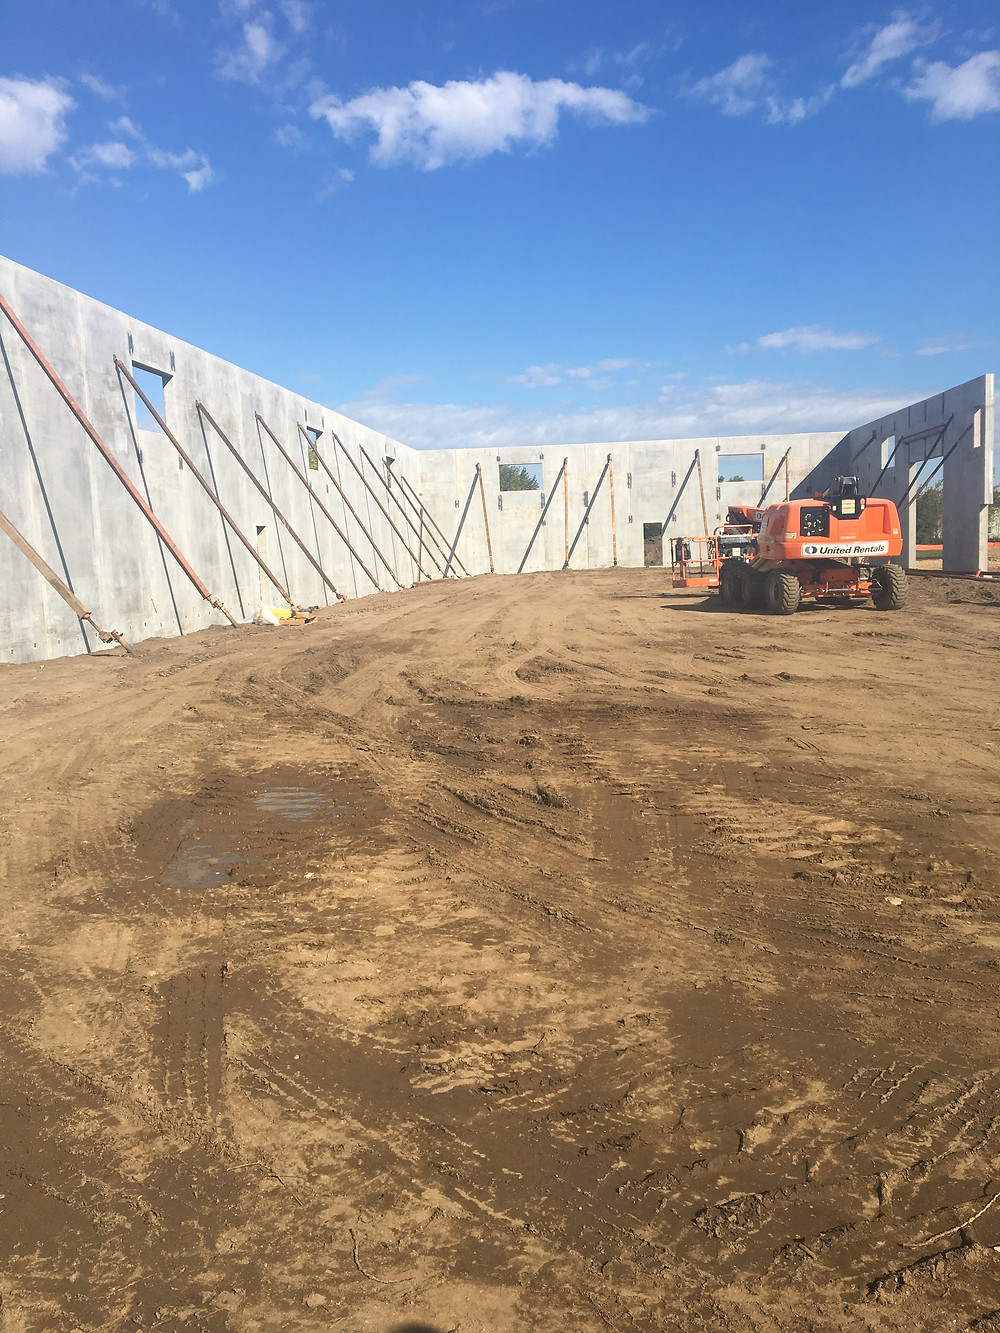 EH Design Blog - Commercial Project - RTL - Exterior Precast Walls Going up - Interior View of Walls  with braces